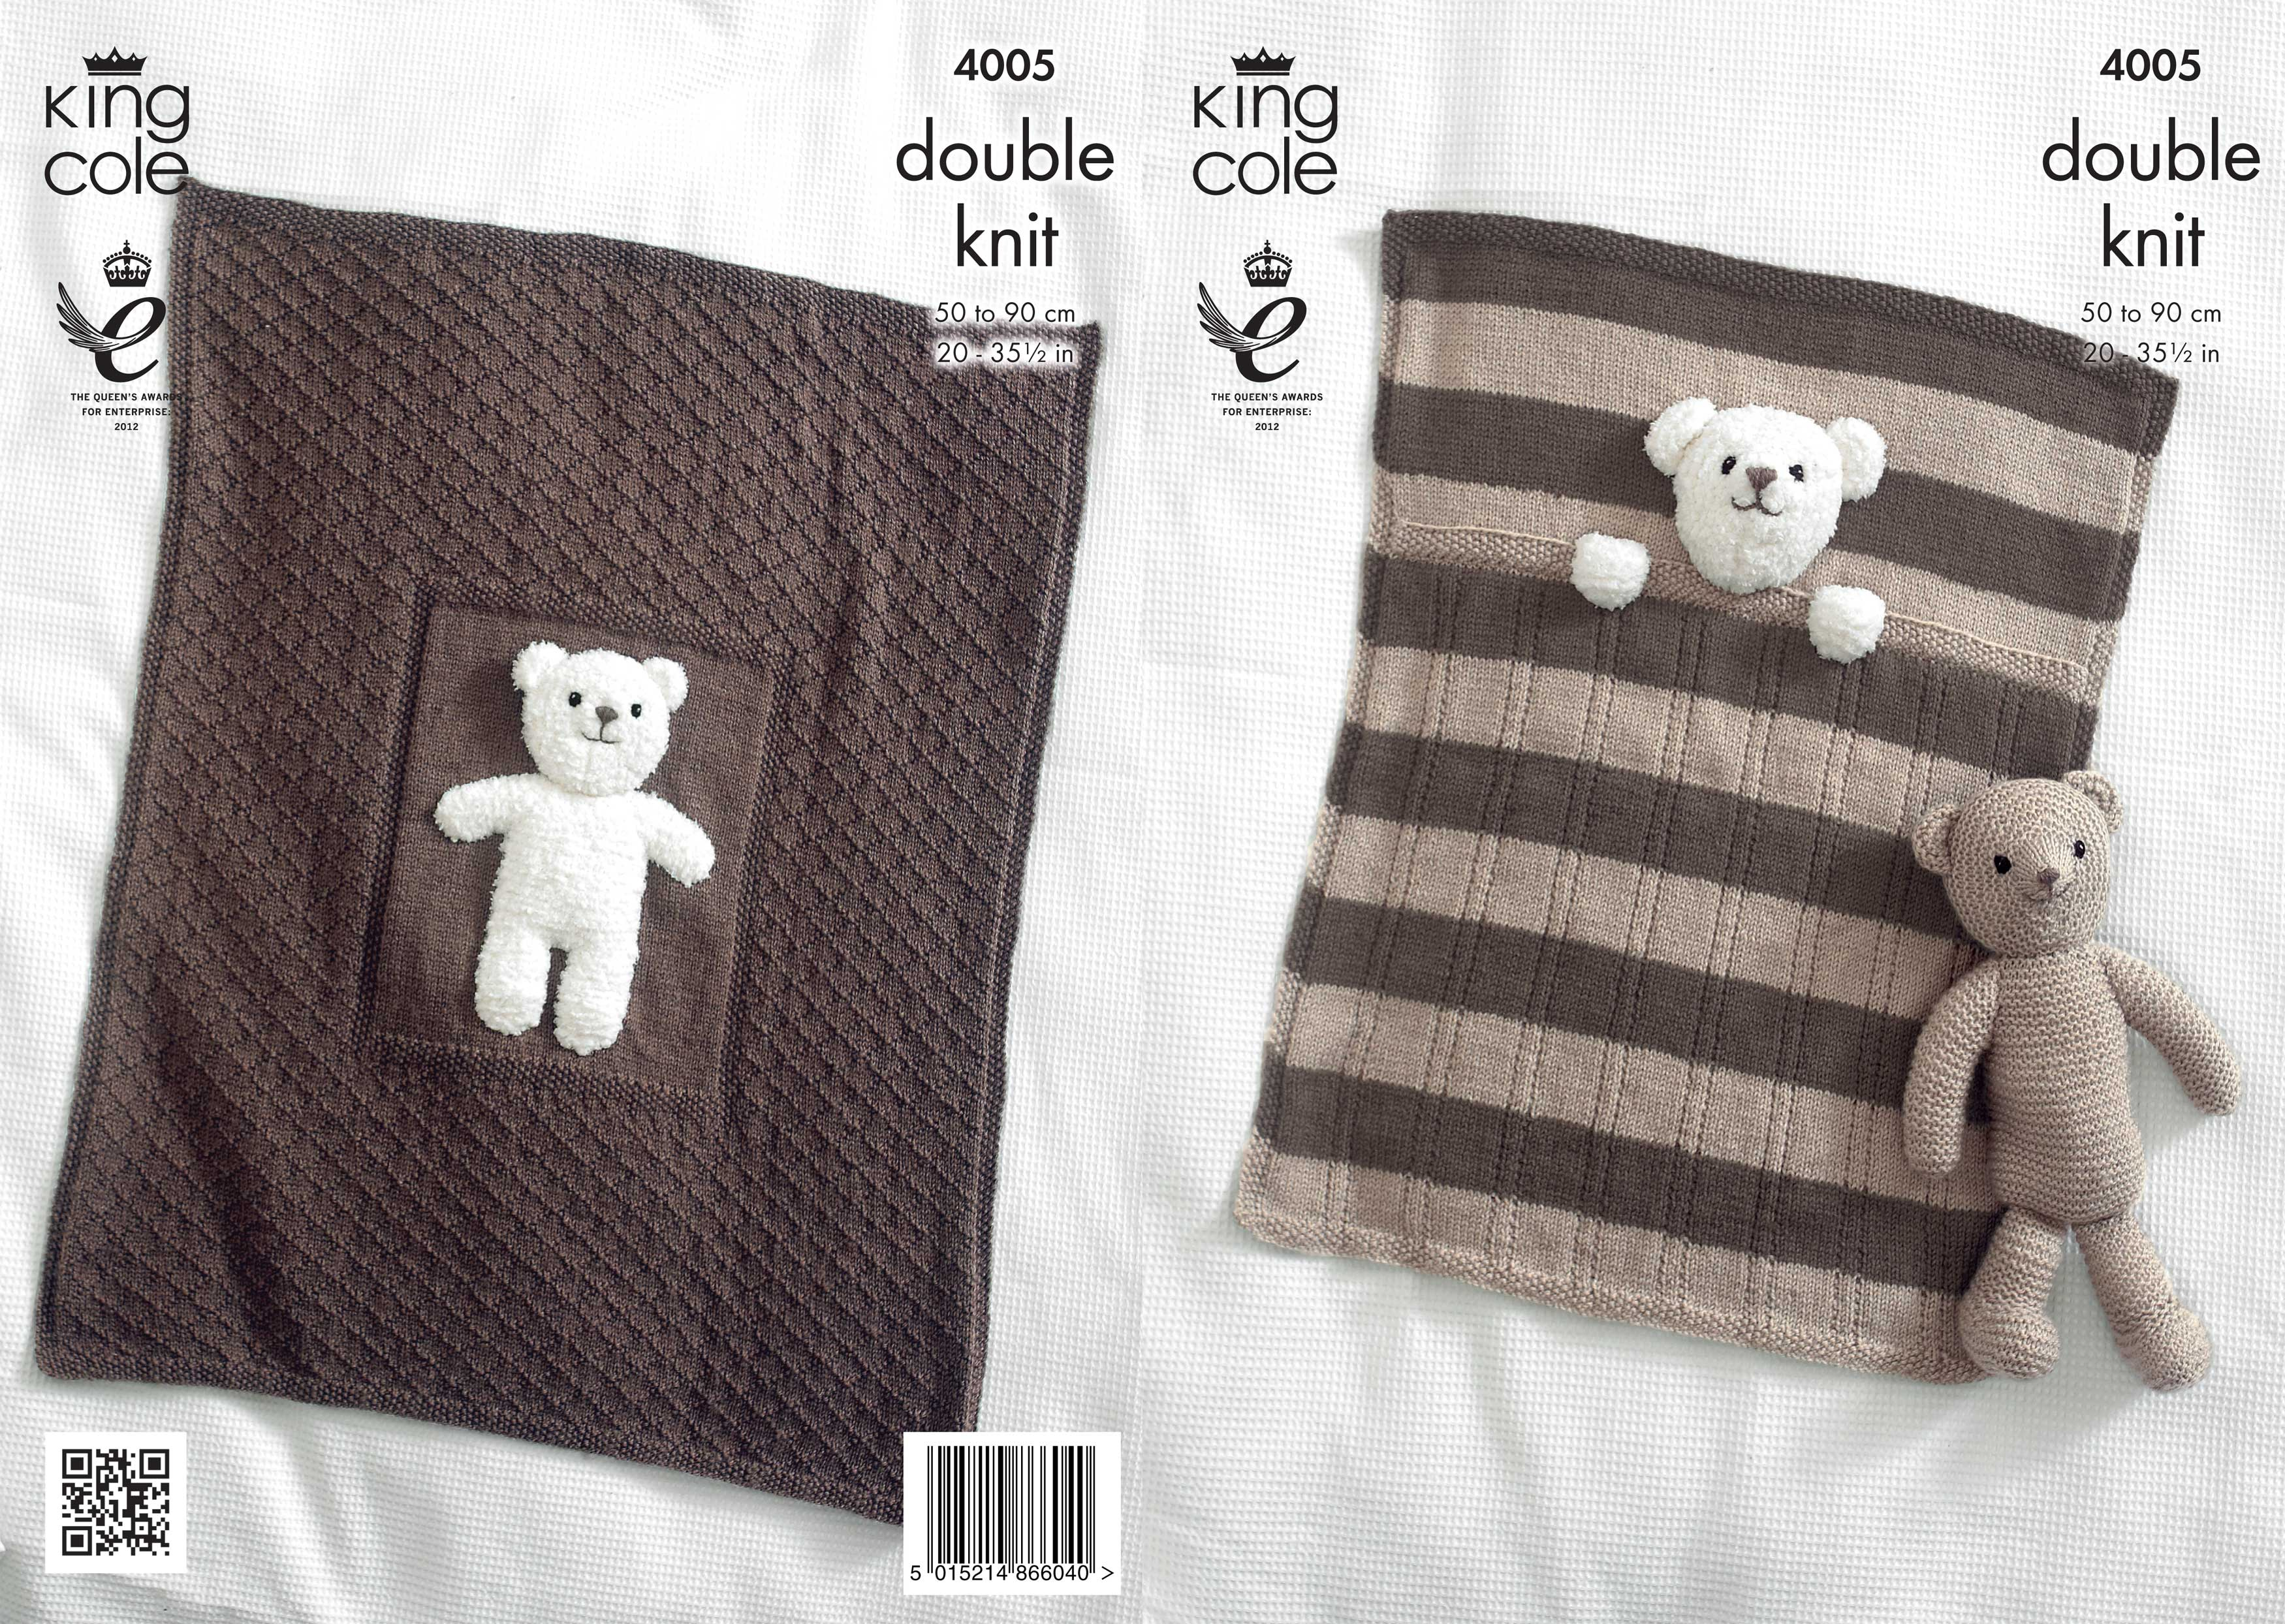 Knitting Patterns For Baby Toys Details About King Cole Double Knitting Pattern Blanket Teddy Bear Toy Cuddles Comfort Dk 4005